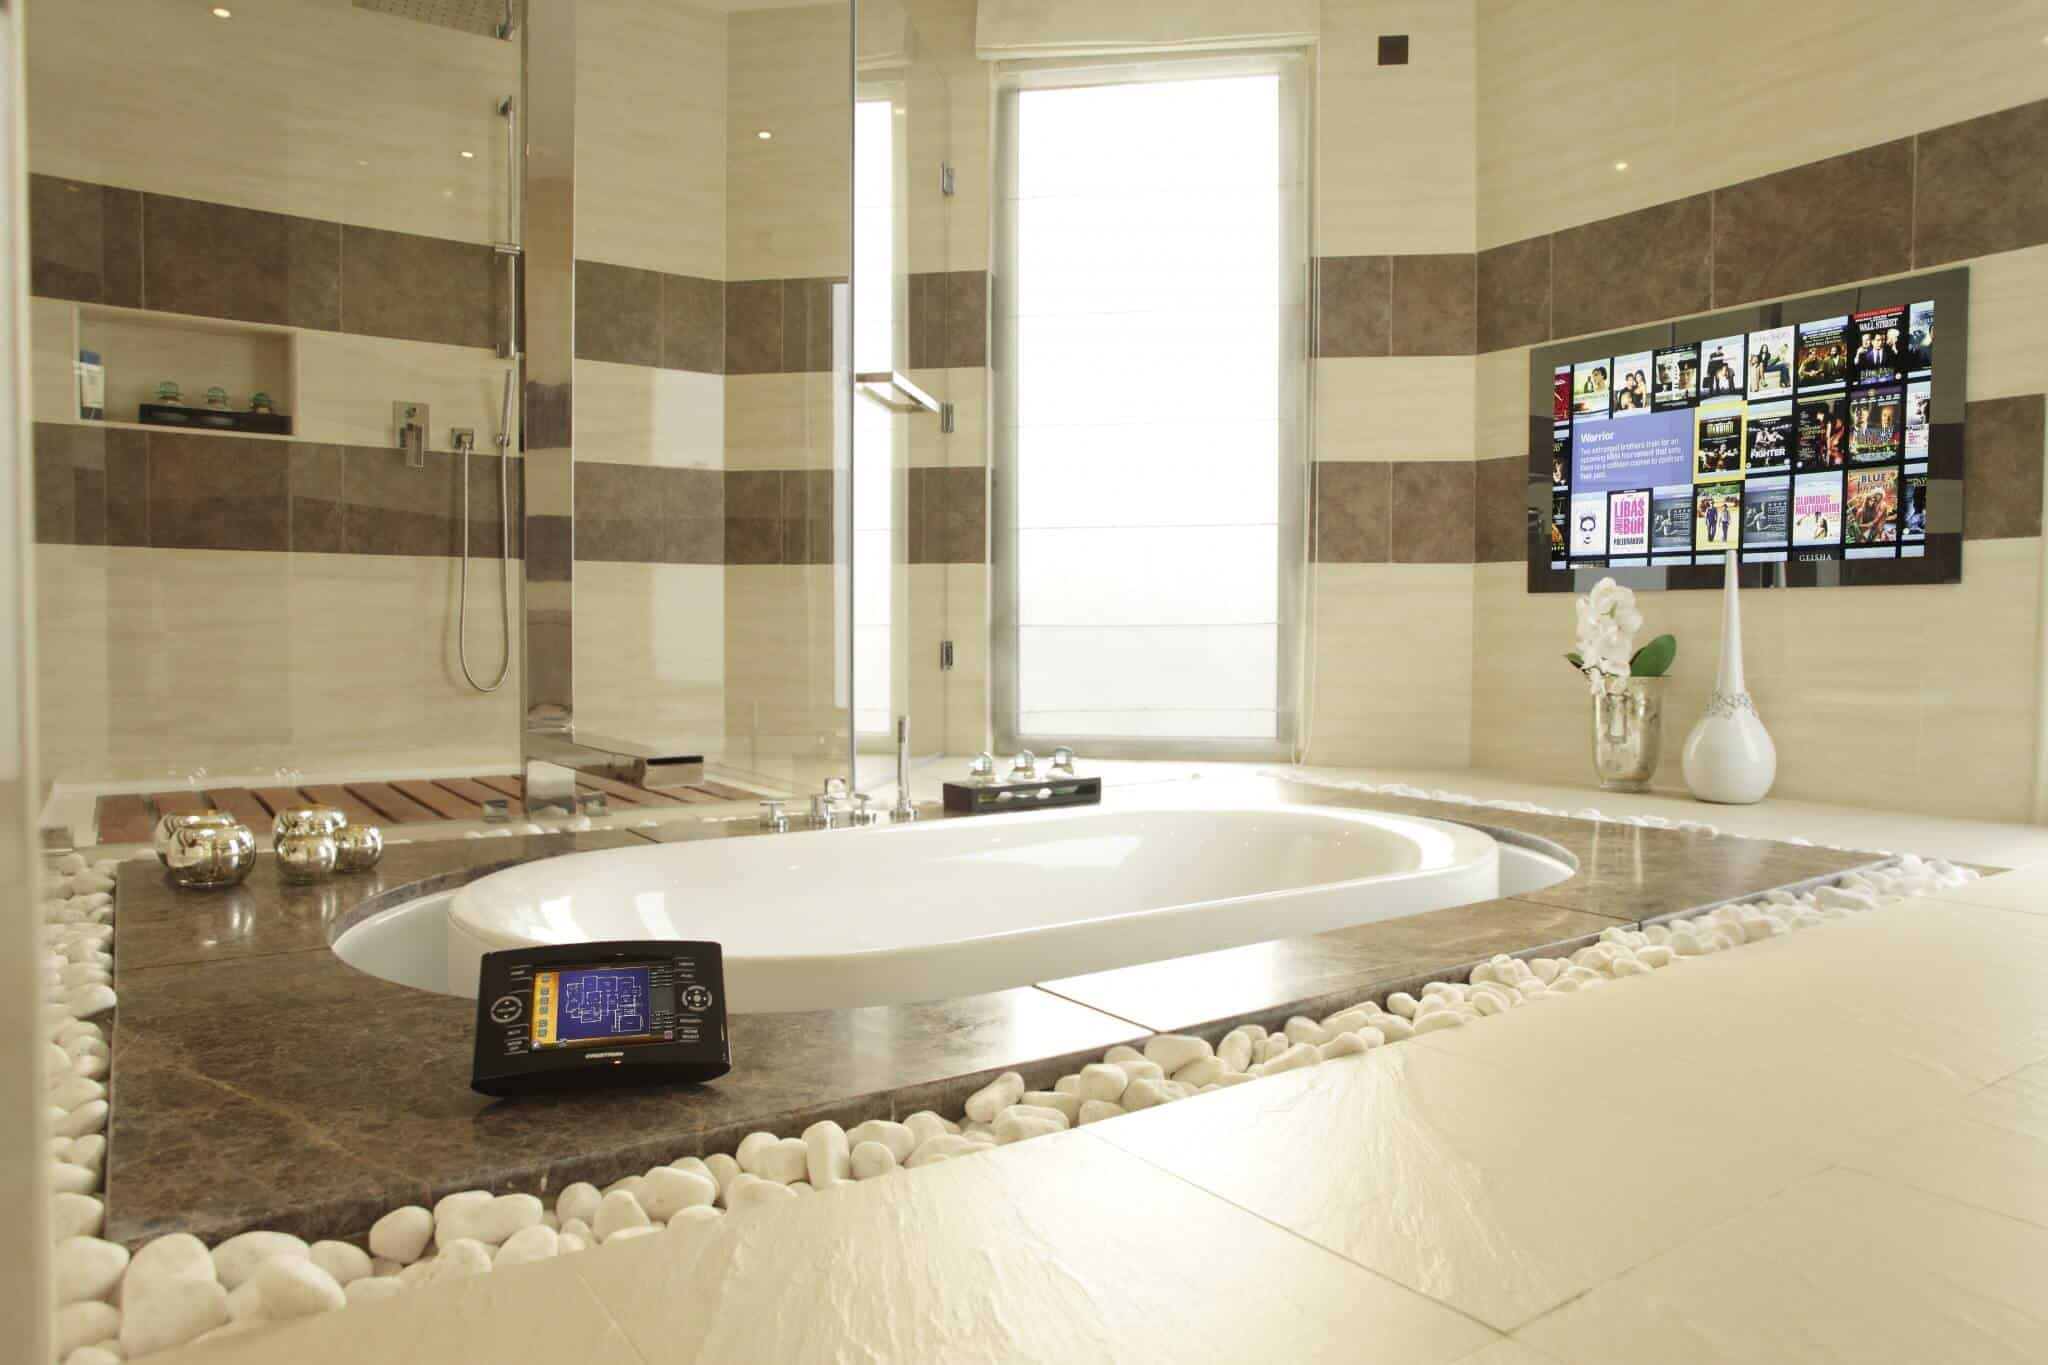 Bathroom showing Touchpanel & Mirror TV